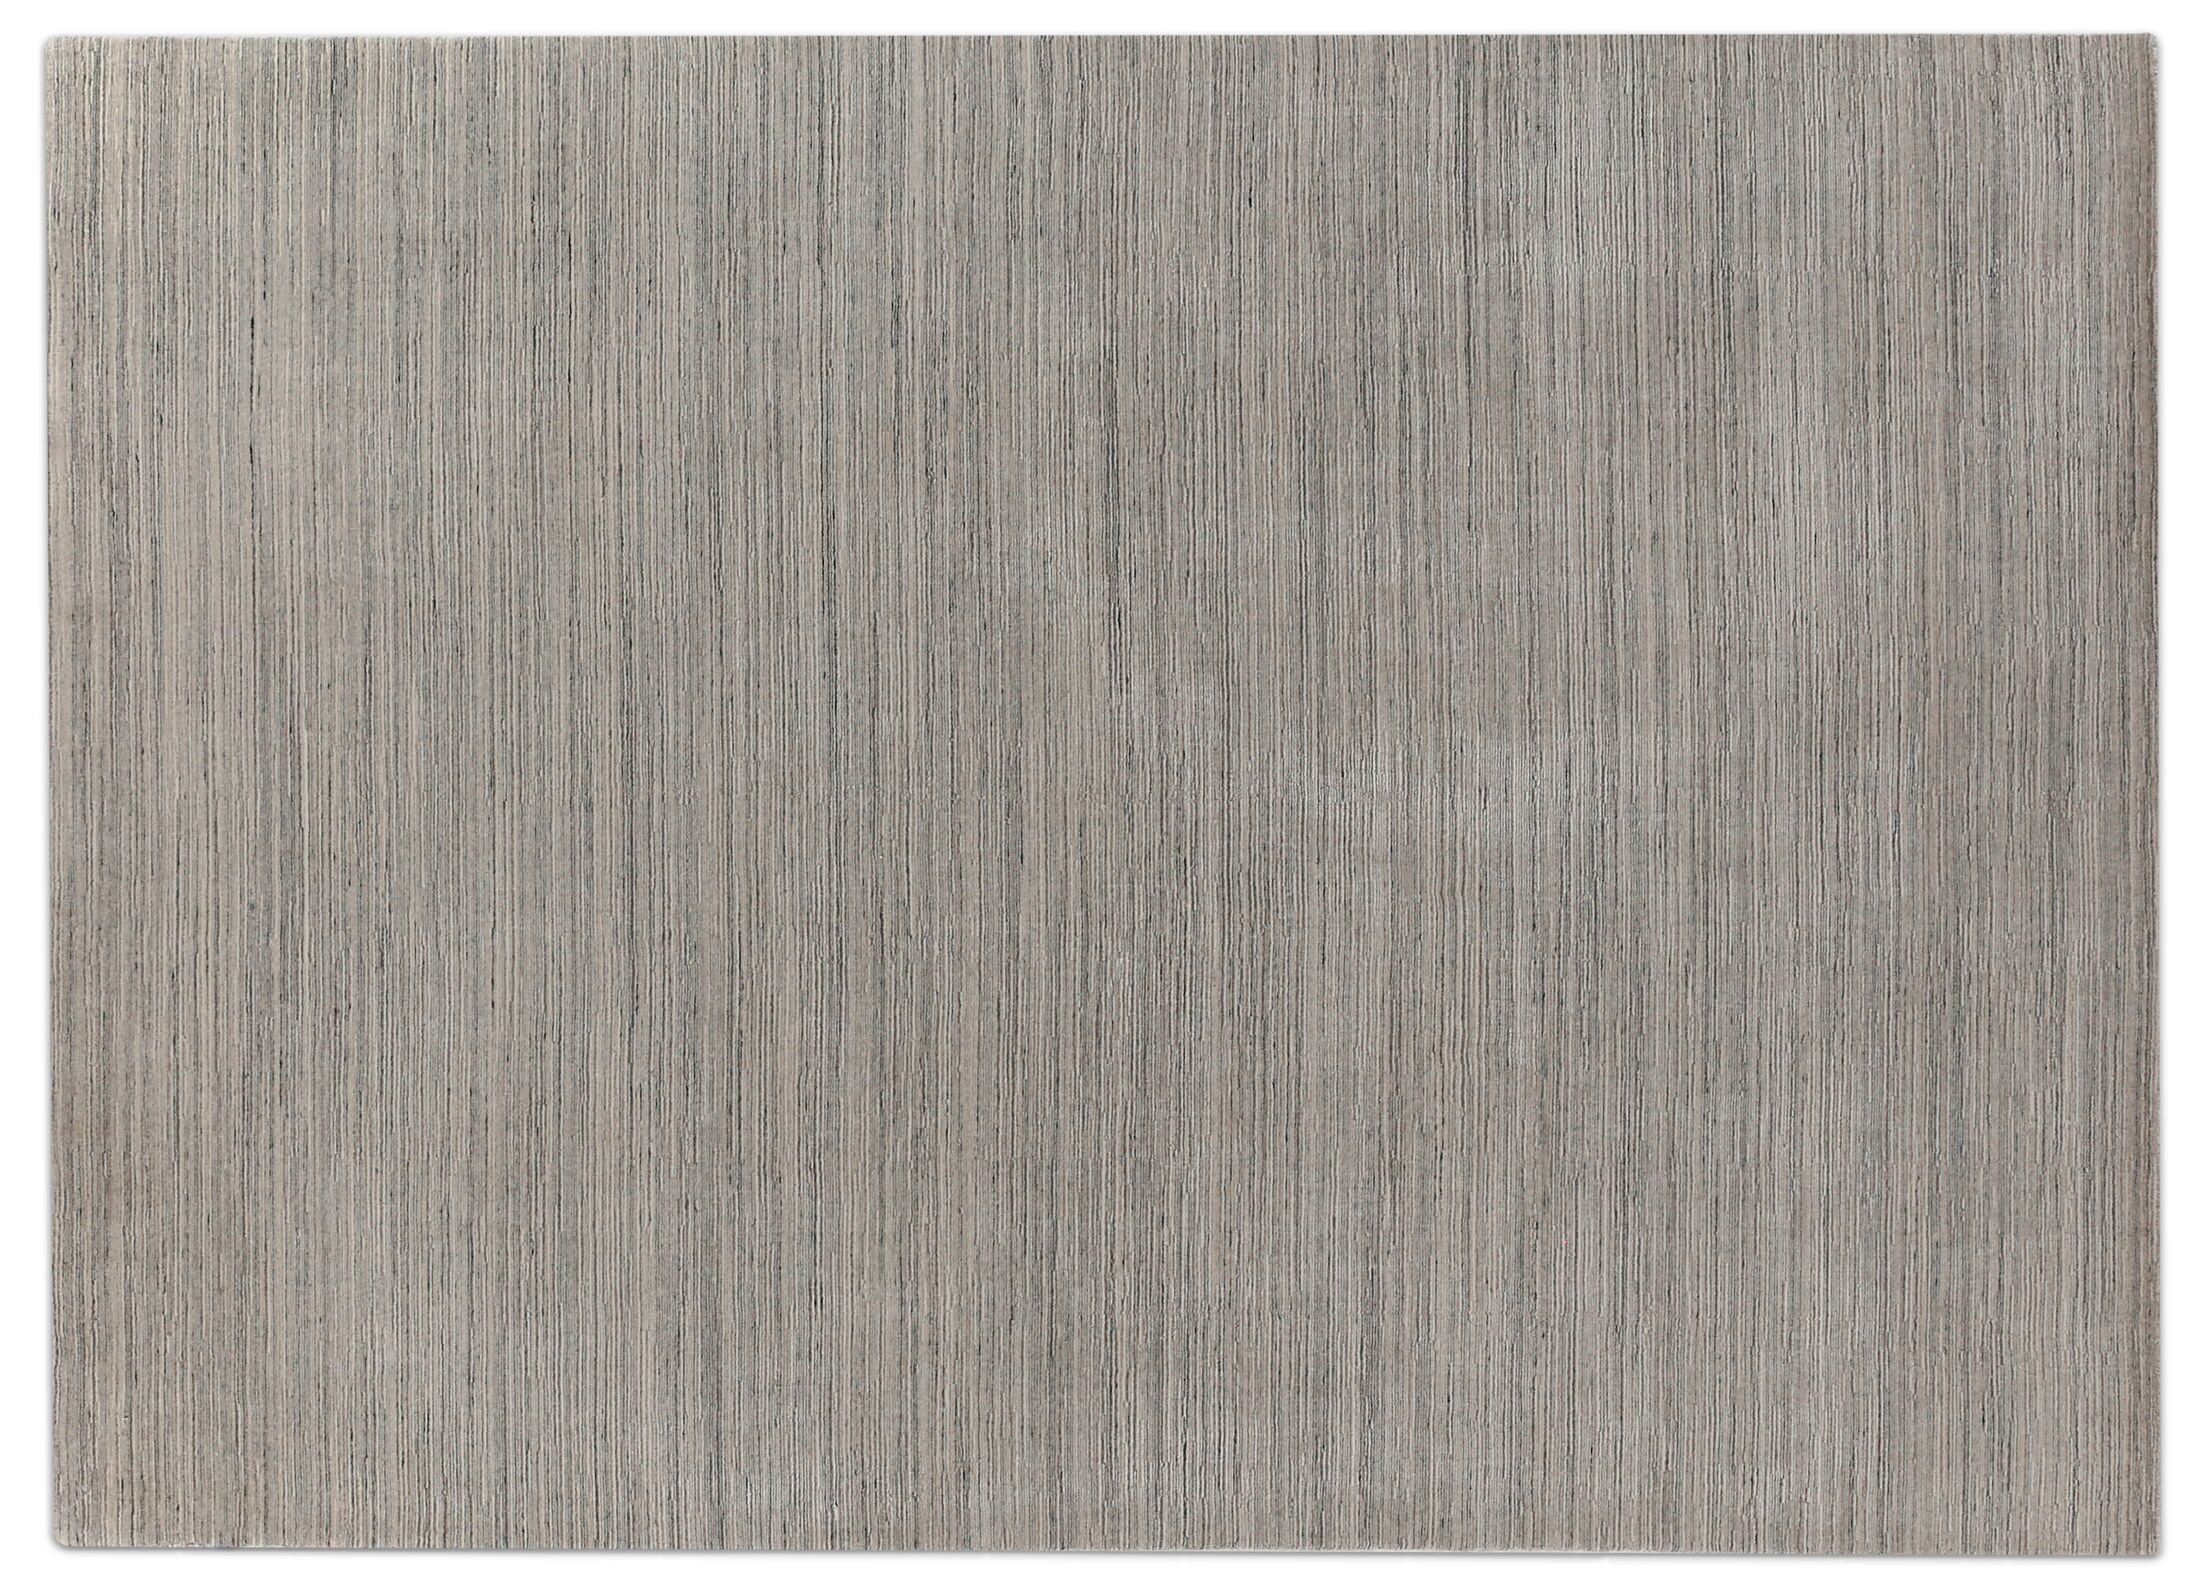 Palazzo Hand Woven Silk Dark Gray/Gray Area Rug Rug Size: Rectangle 8' x 11'